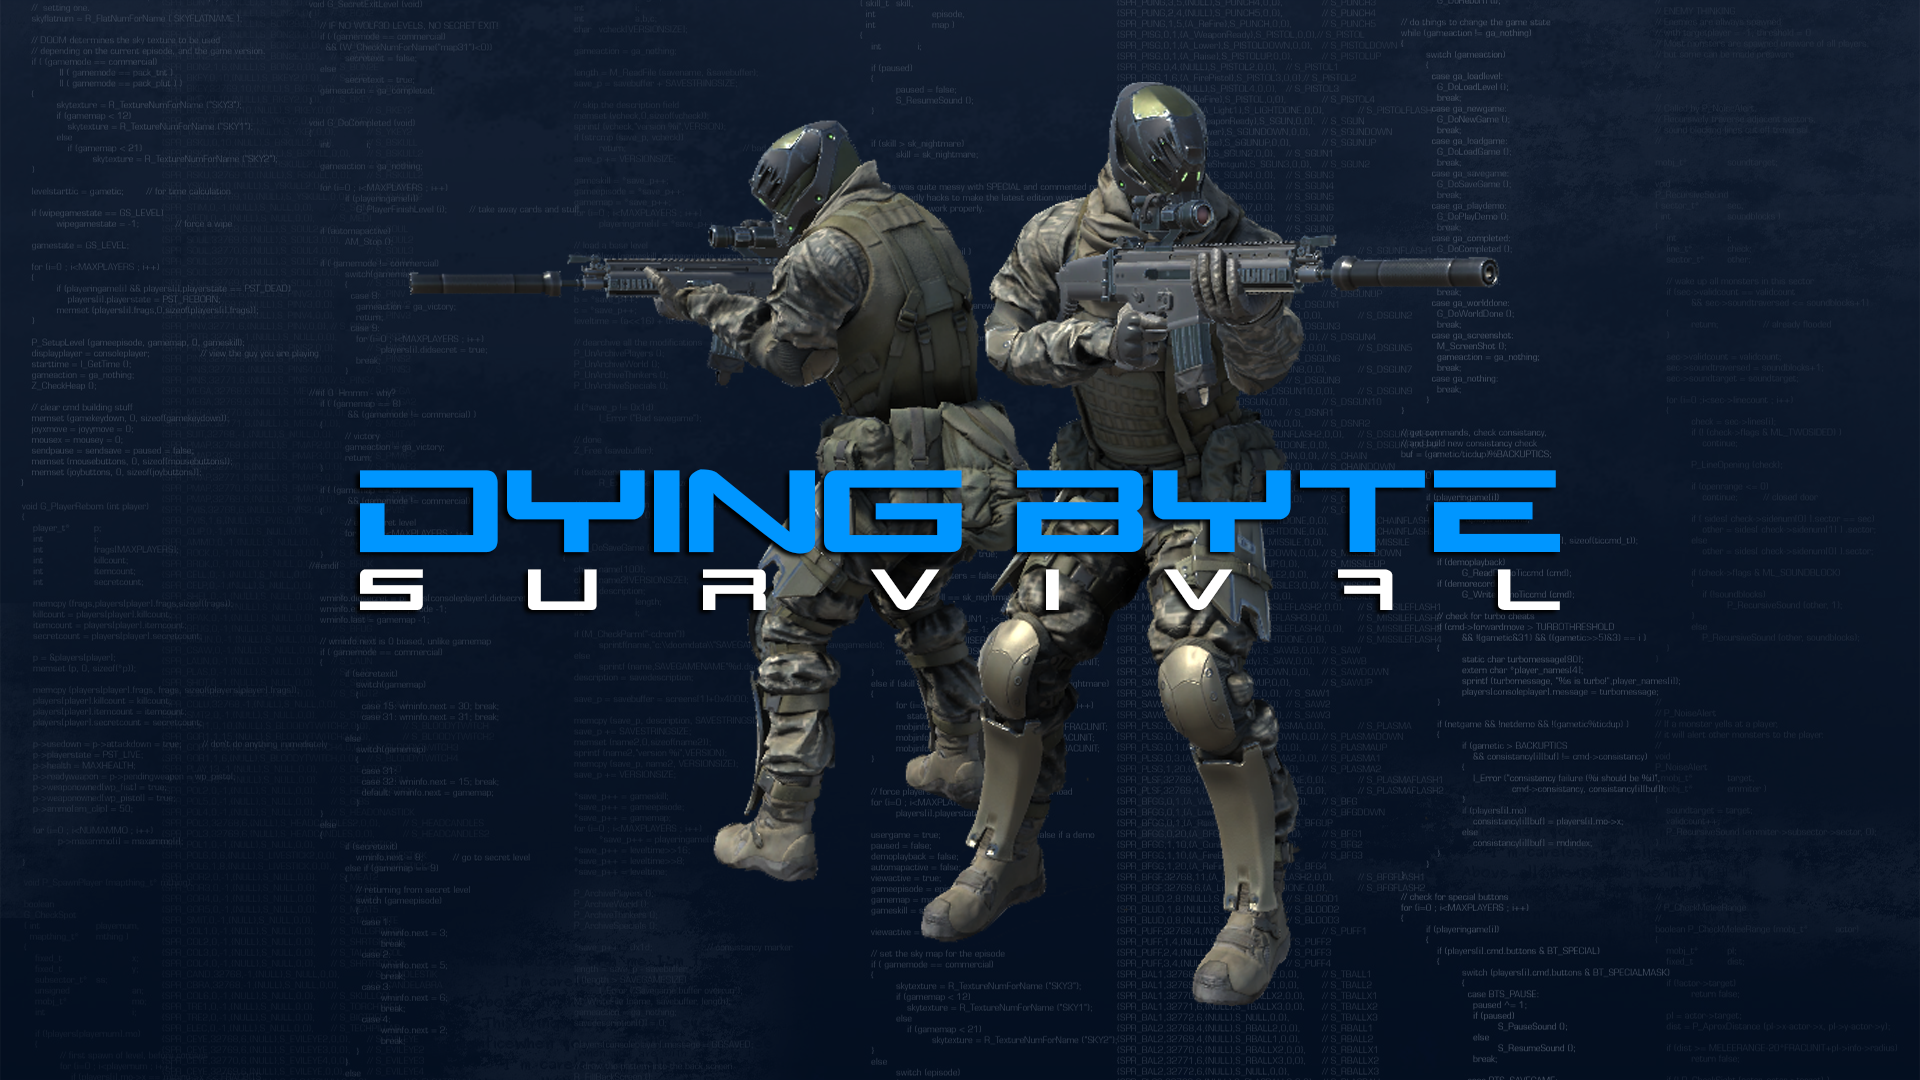 Dying_Byte_Wallpaper_2_new.png